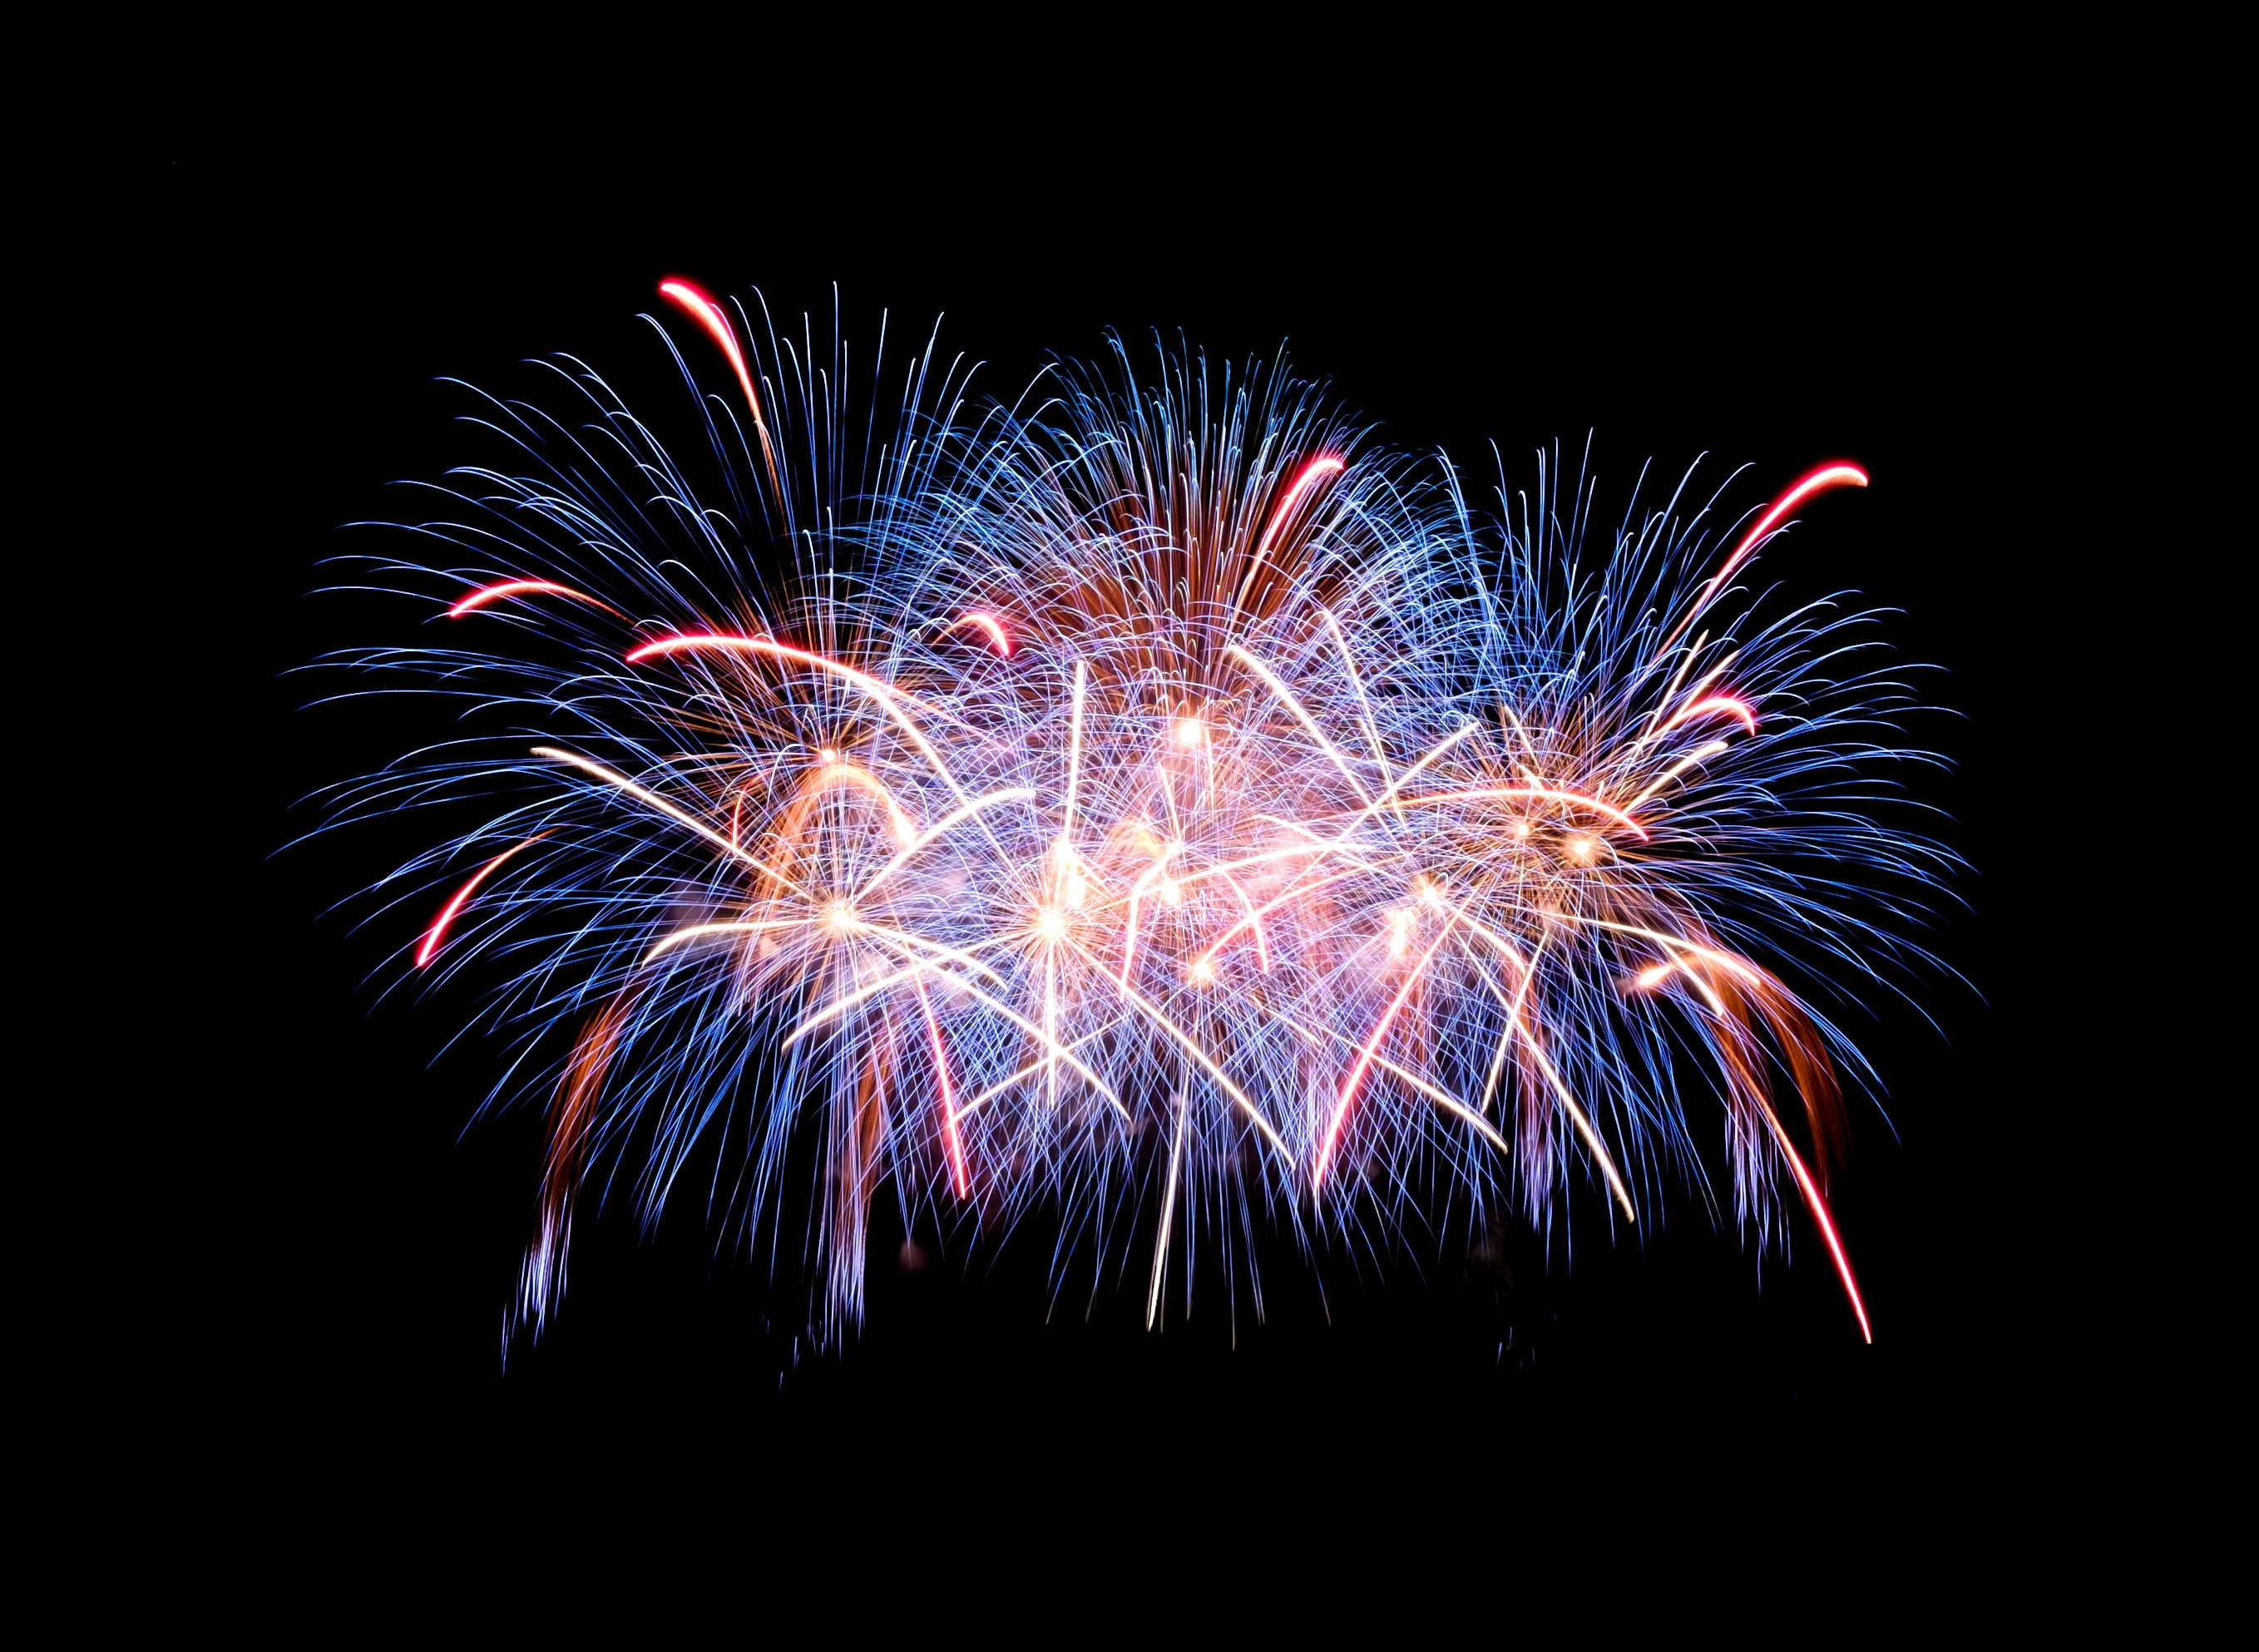 Firework safety tips to keep you and your family stay safe on Bonfire Night